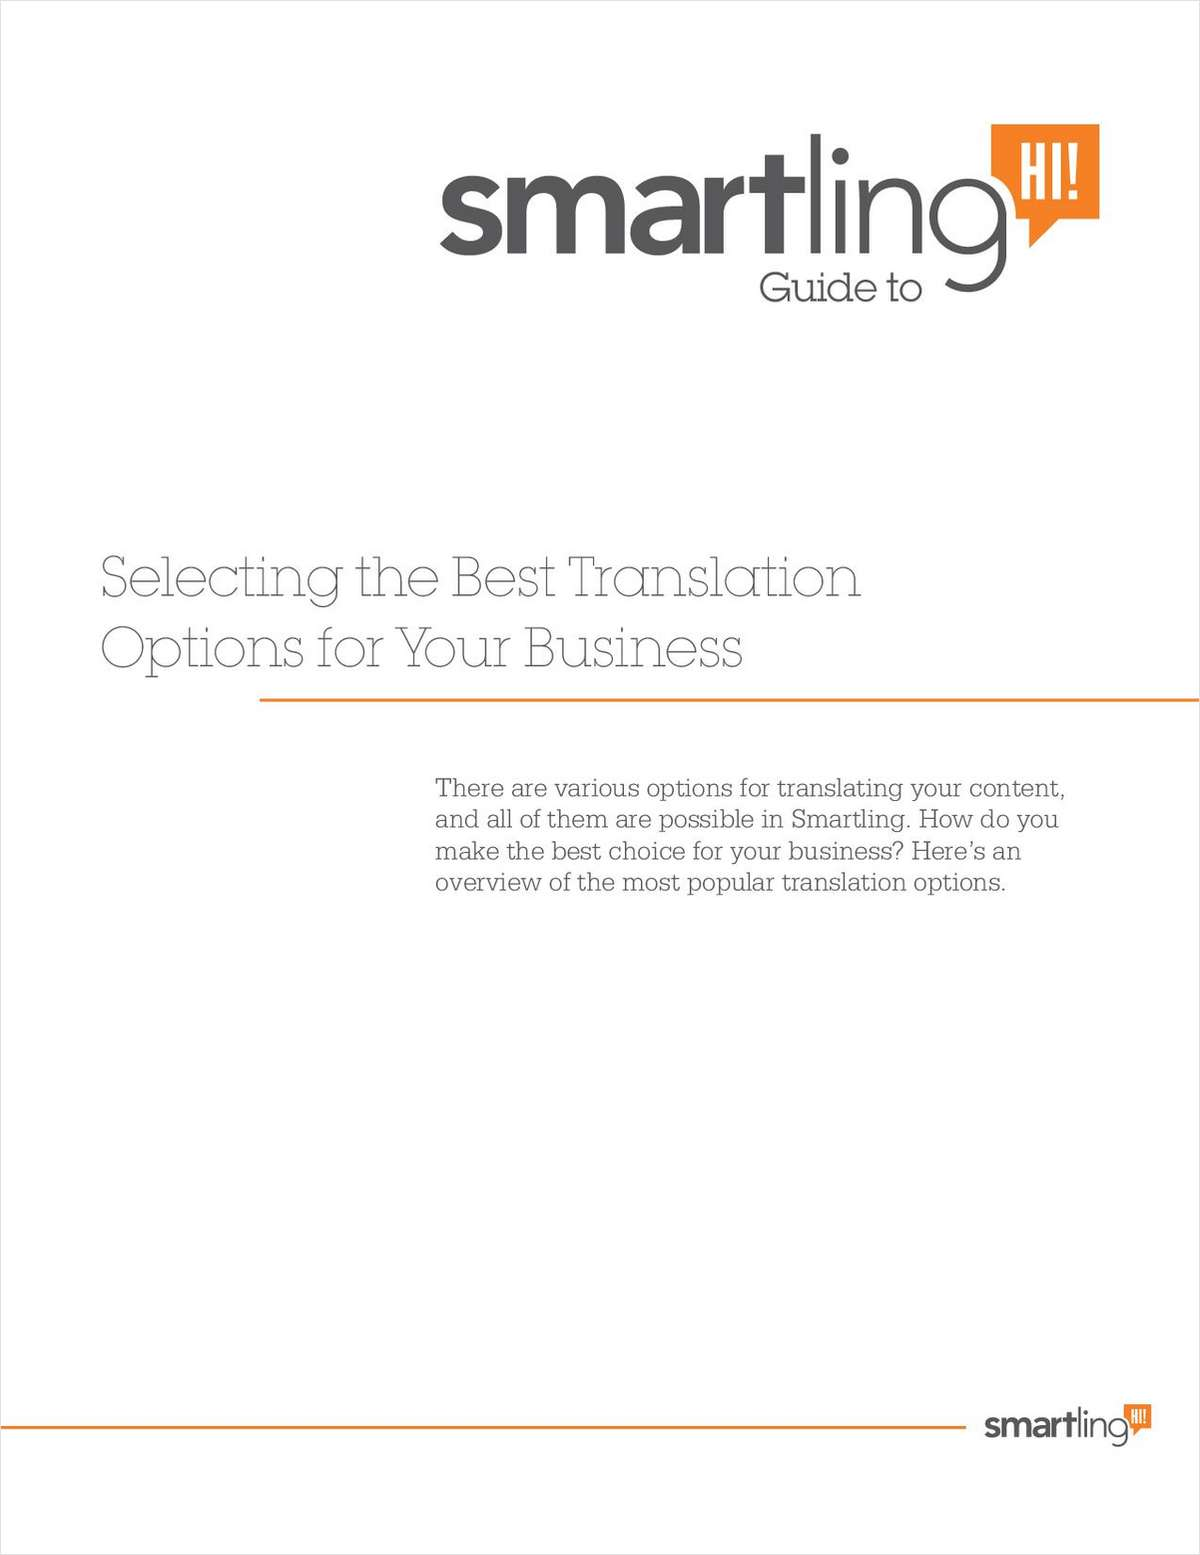 Selecting the Best Translation Options for Your Business